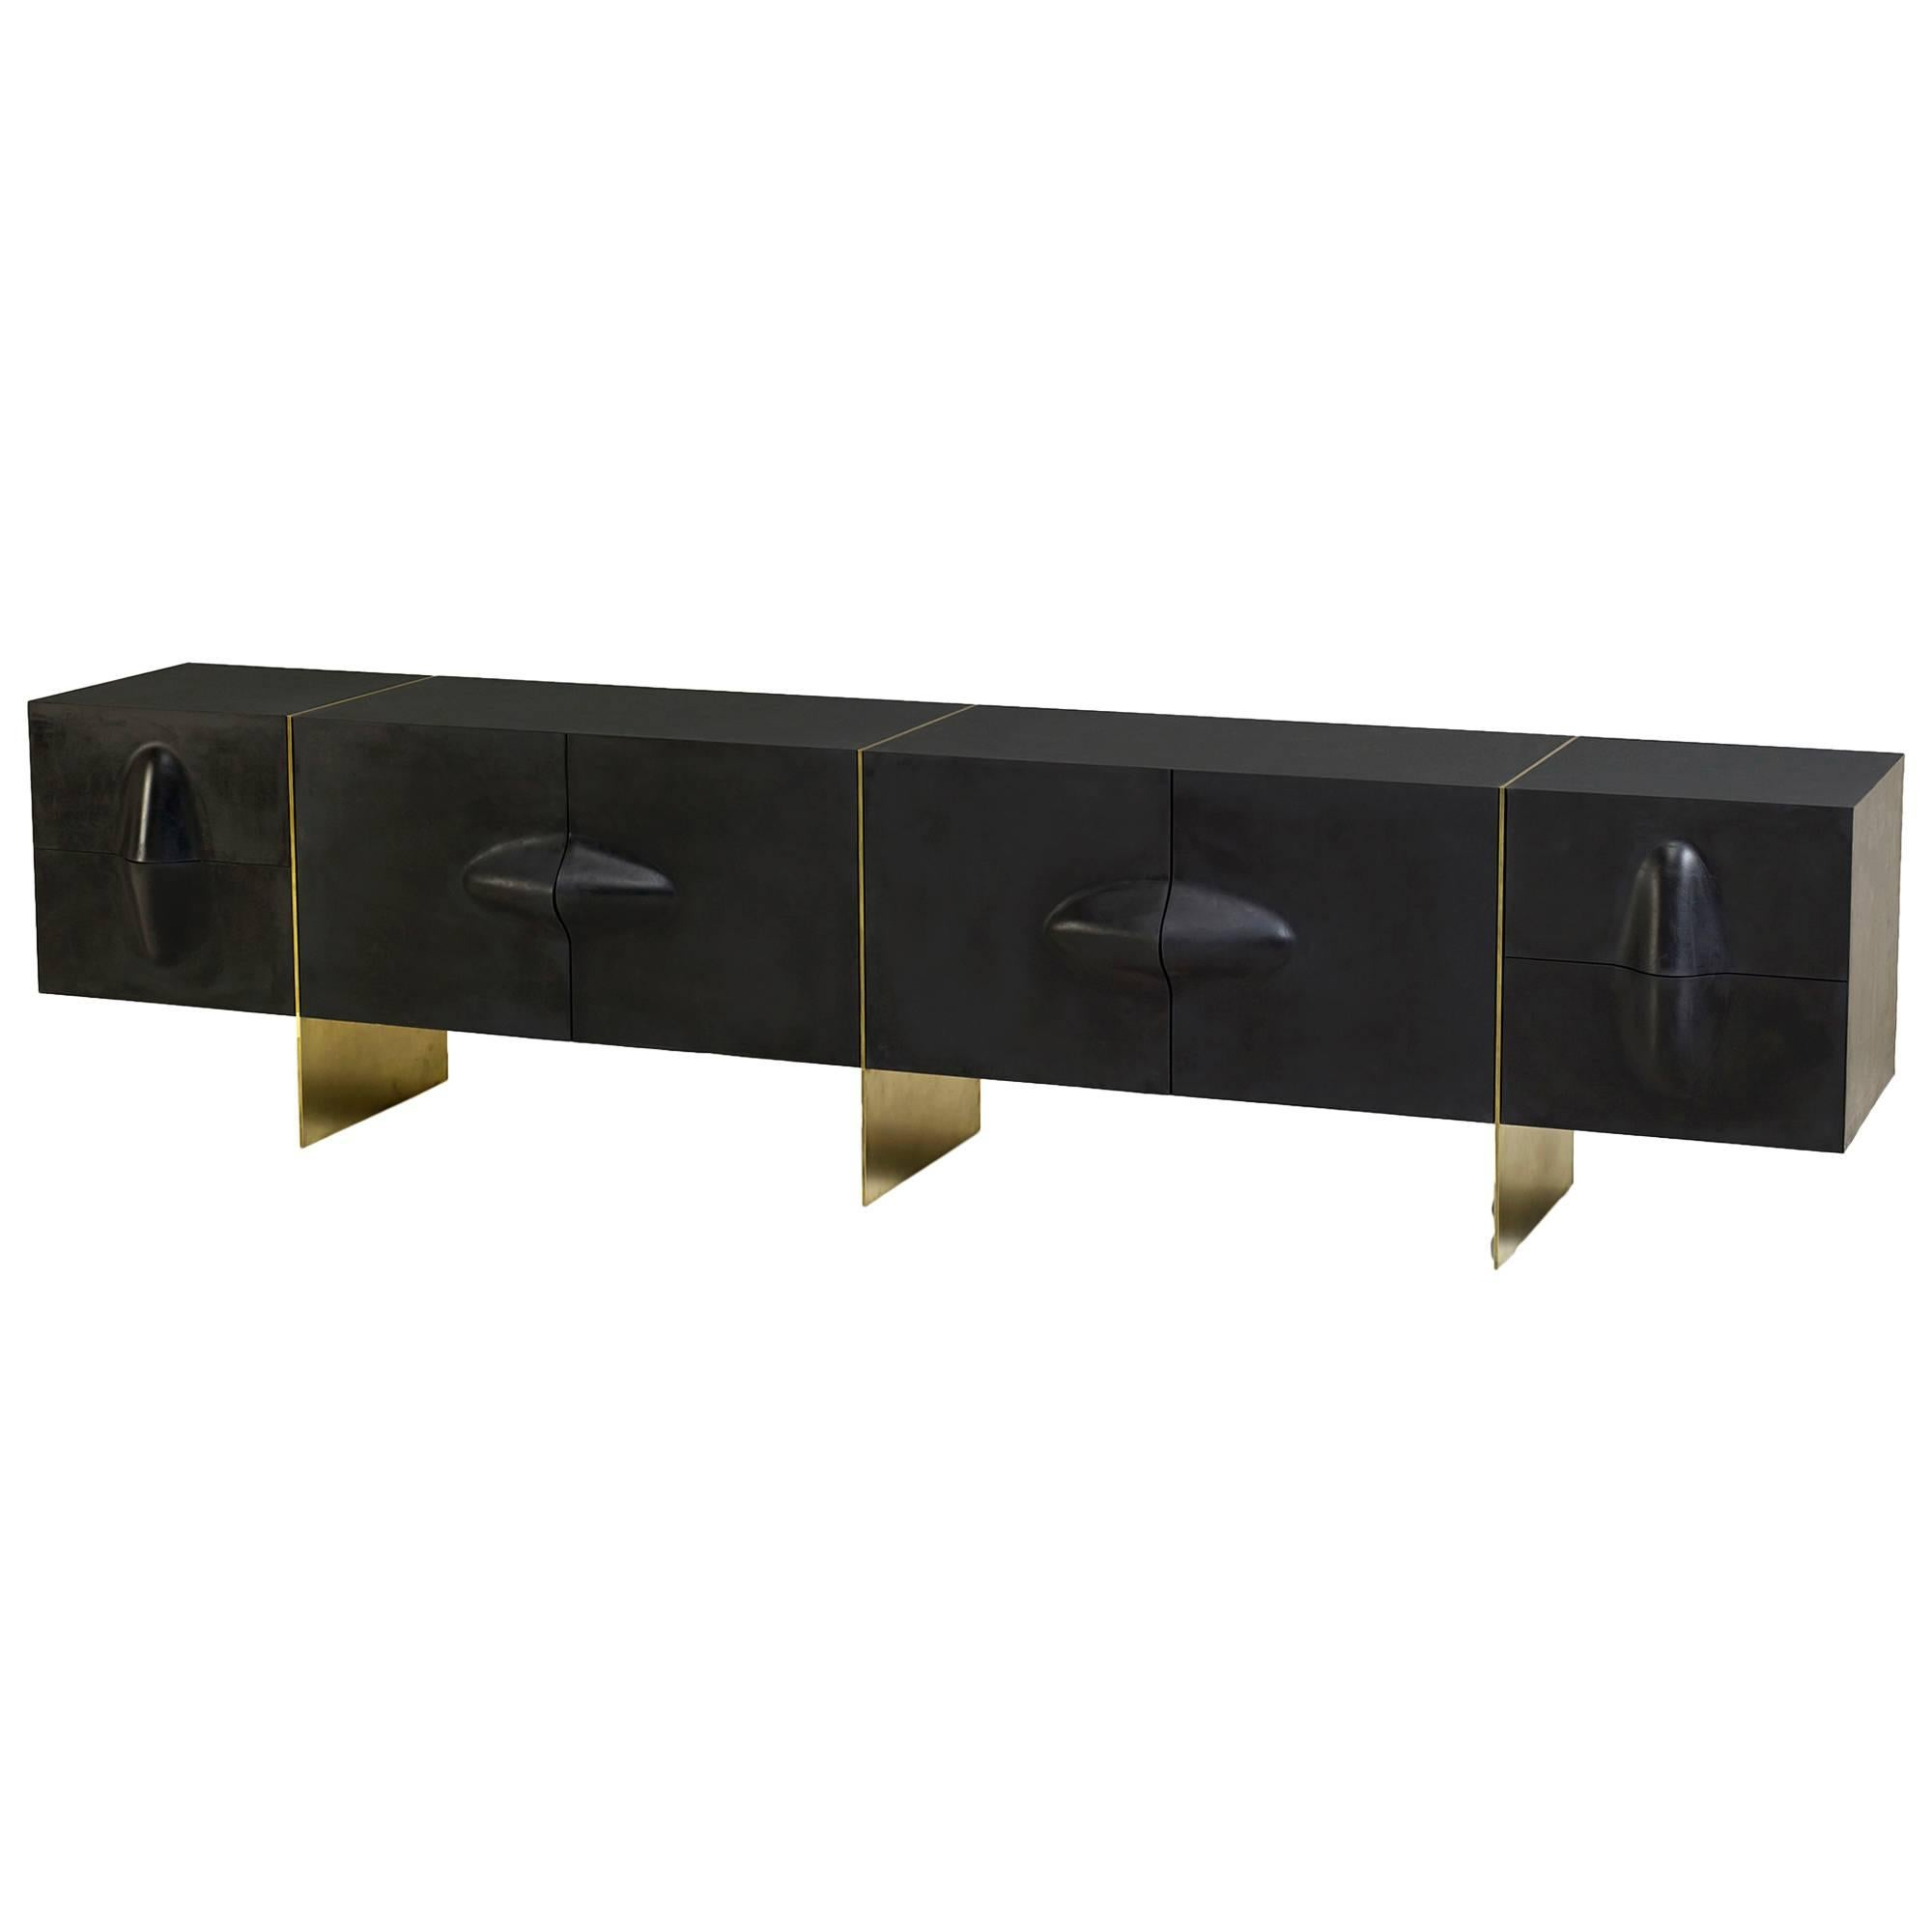 Large Brian Thoreen Rubber And Brass Credenza Or Sideboard For